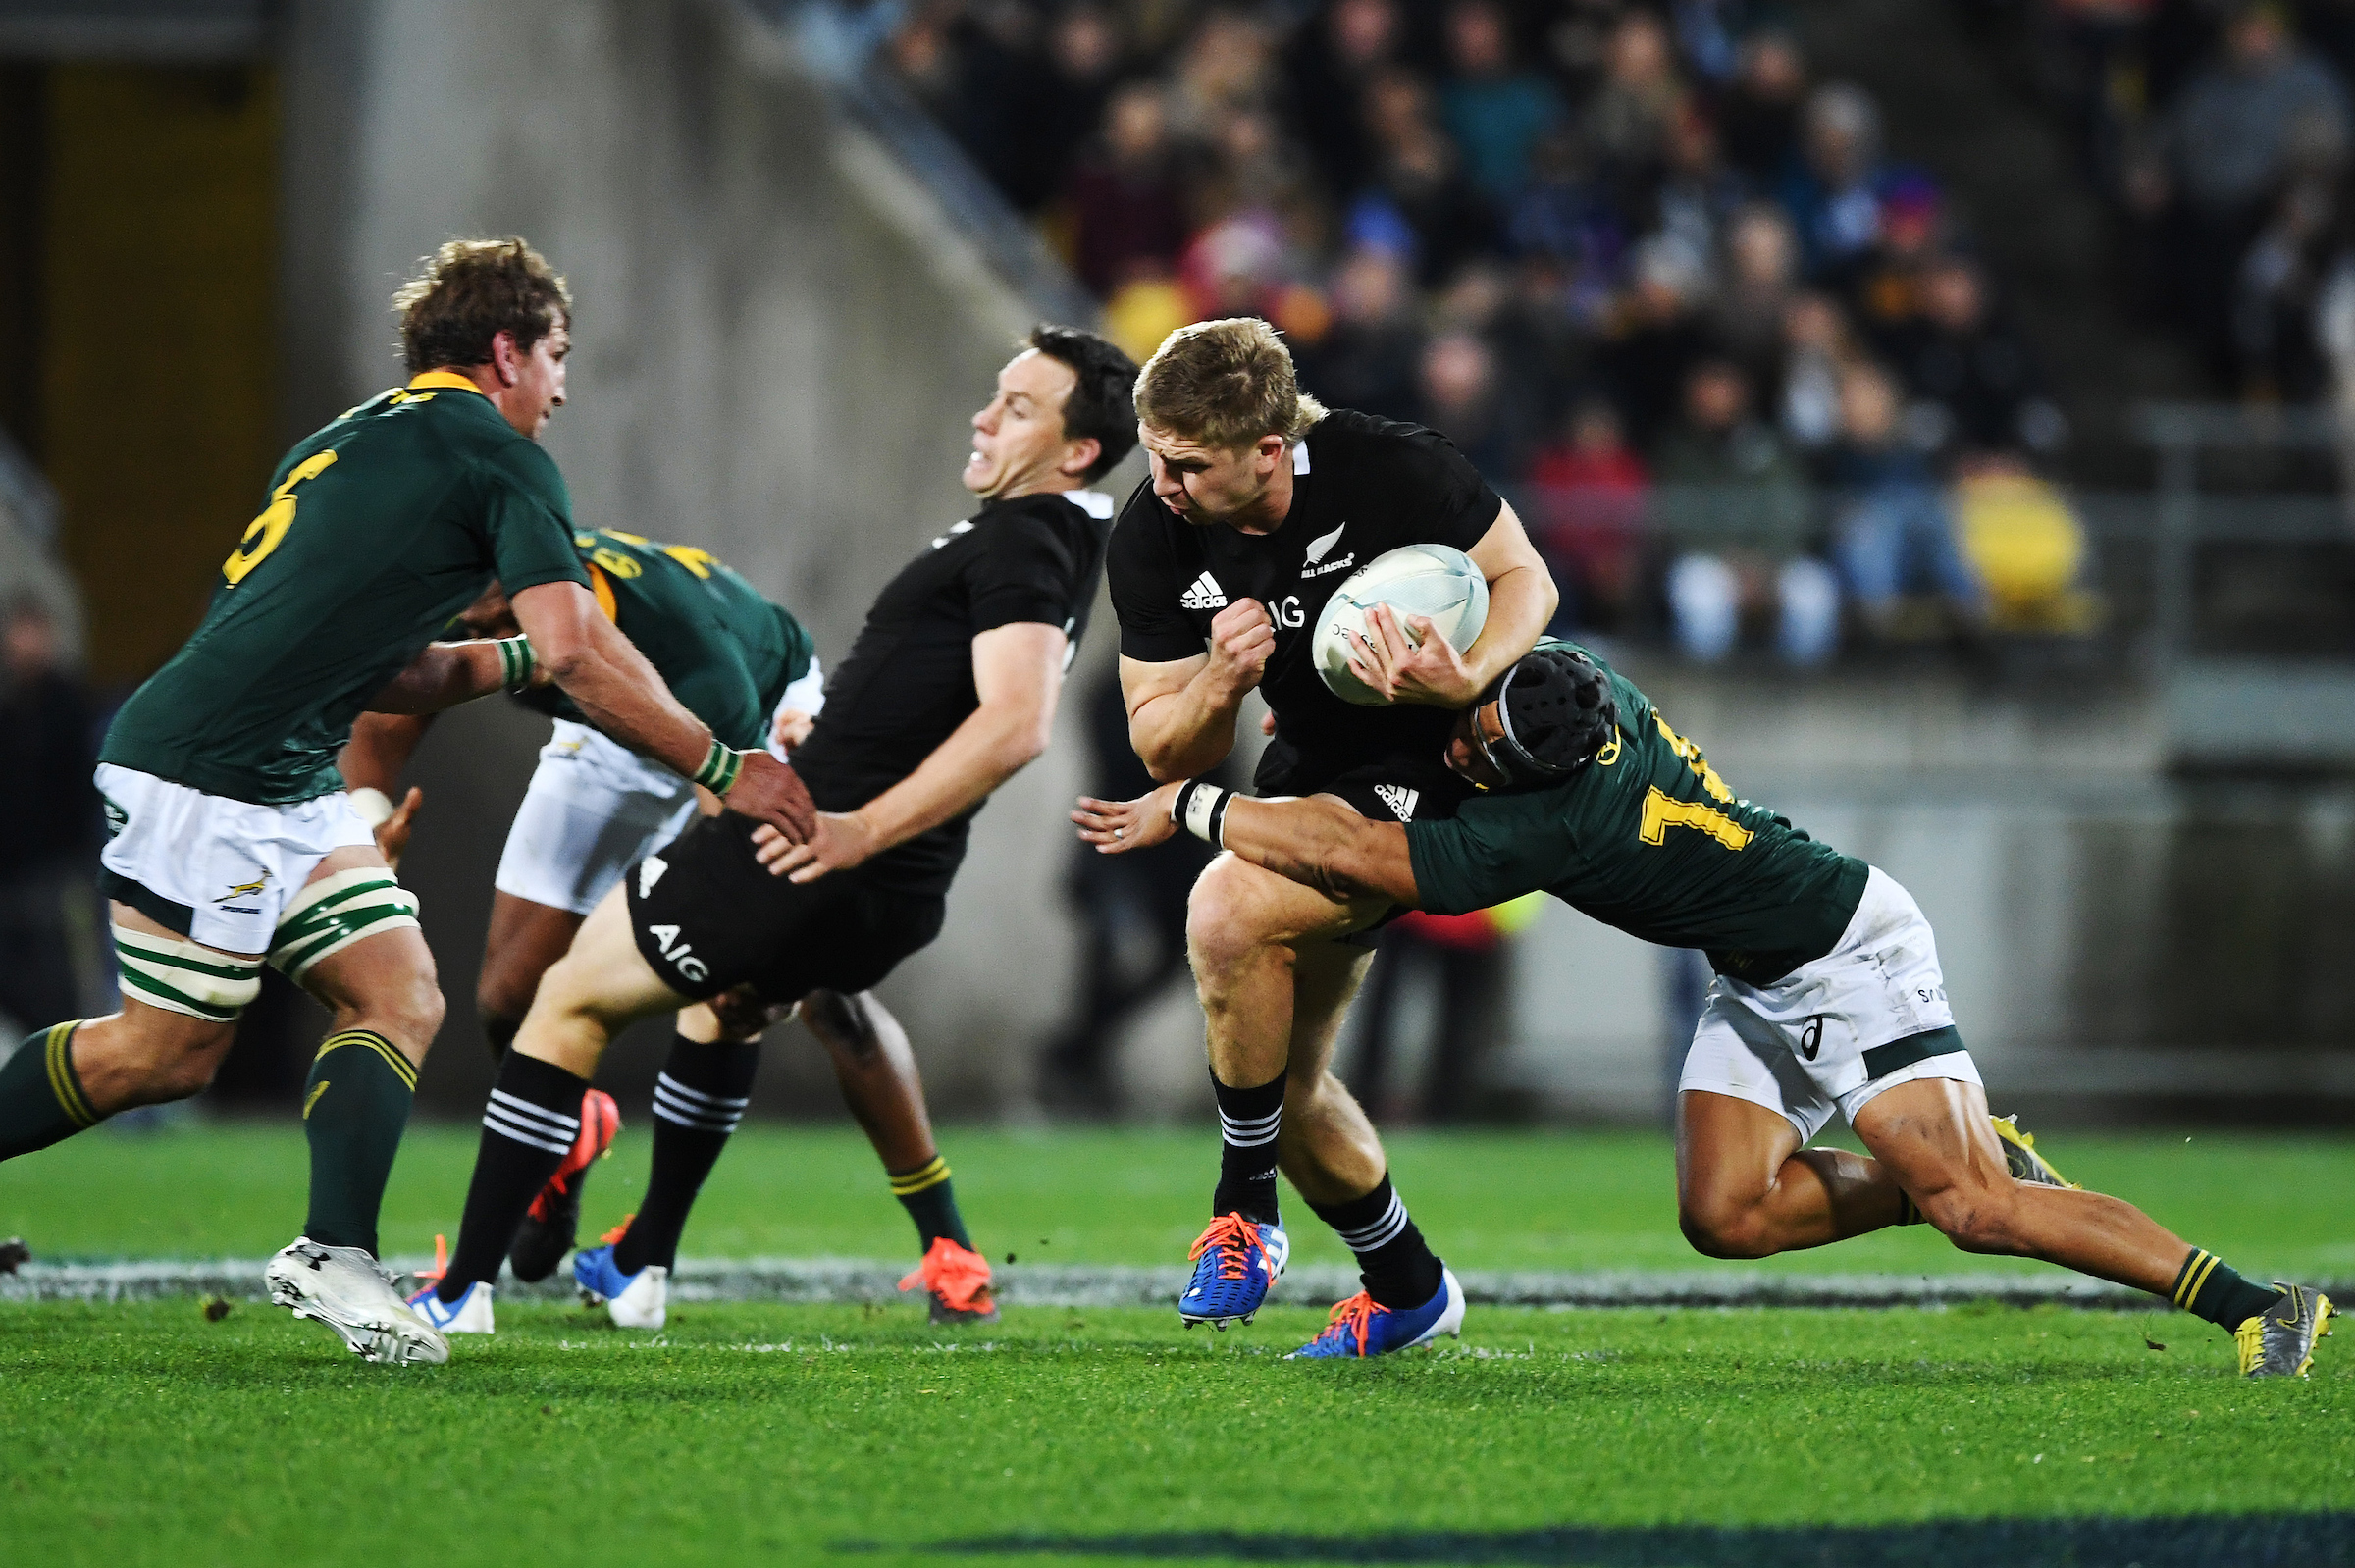 Rugby Championship – New Zealand v South Africa, 27 July 2019